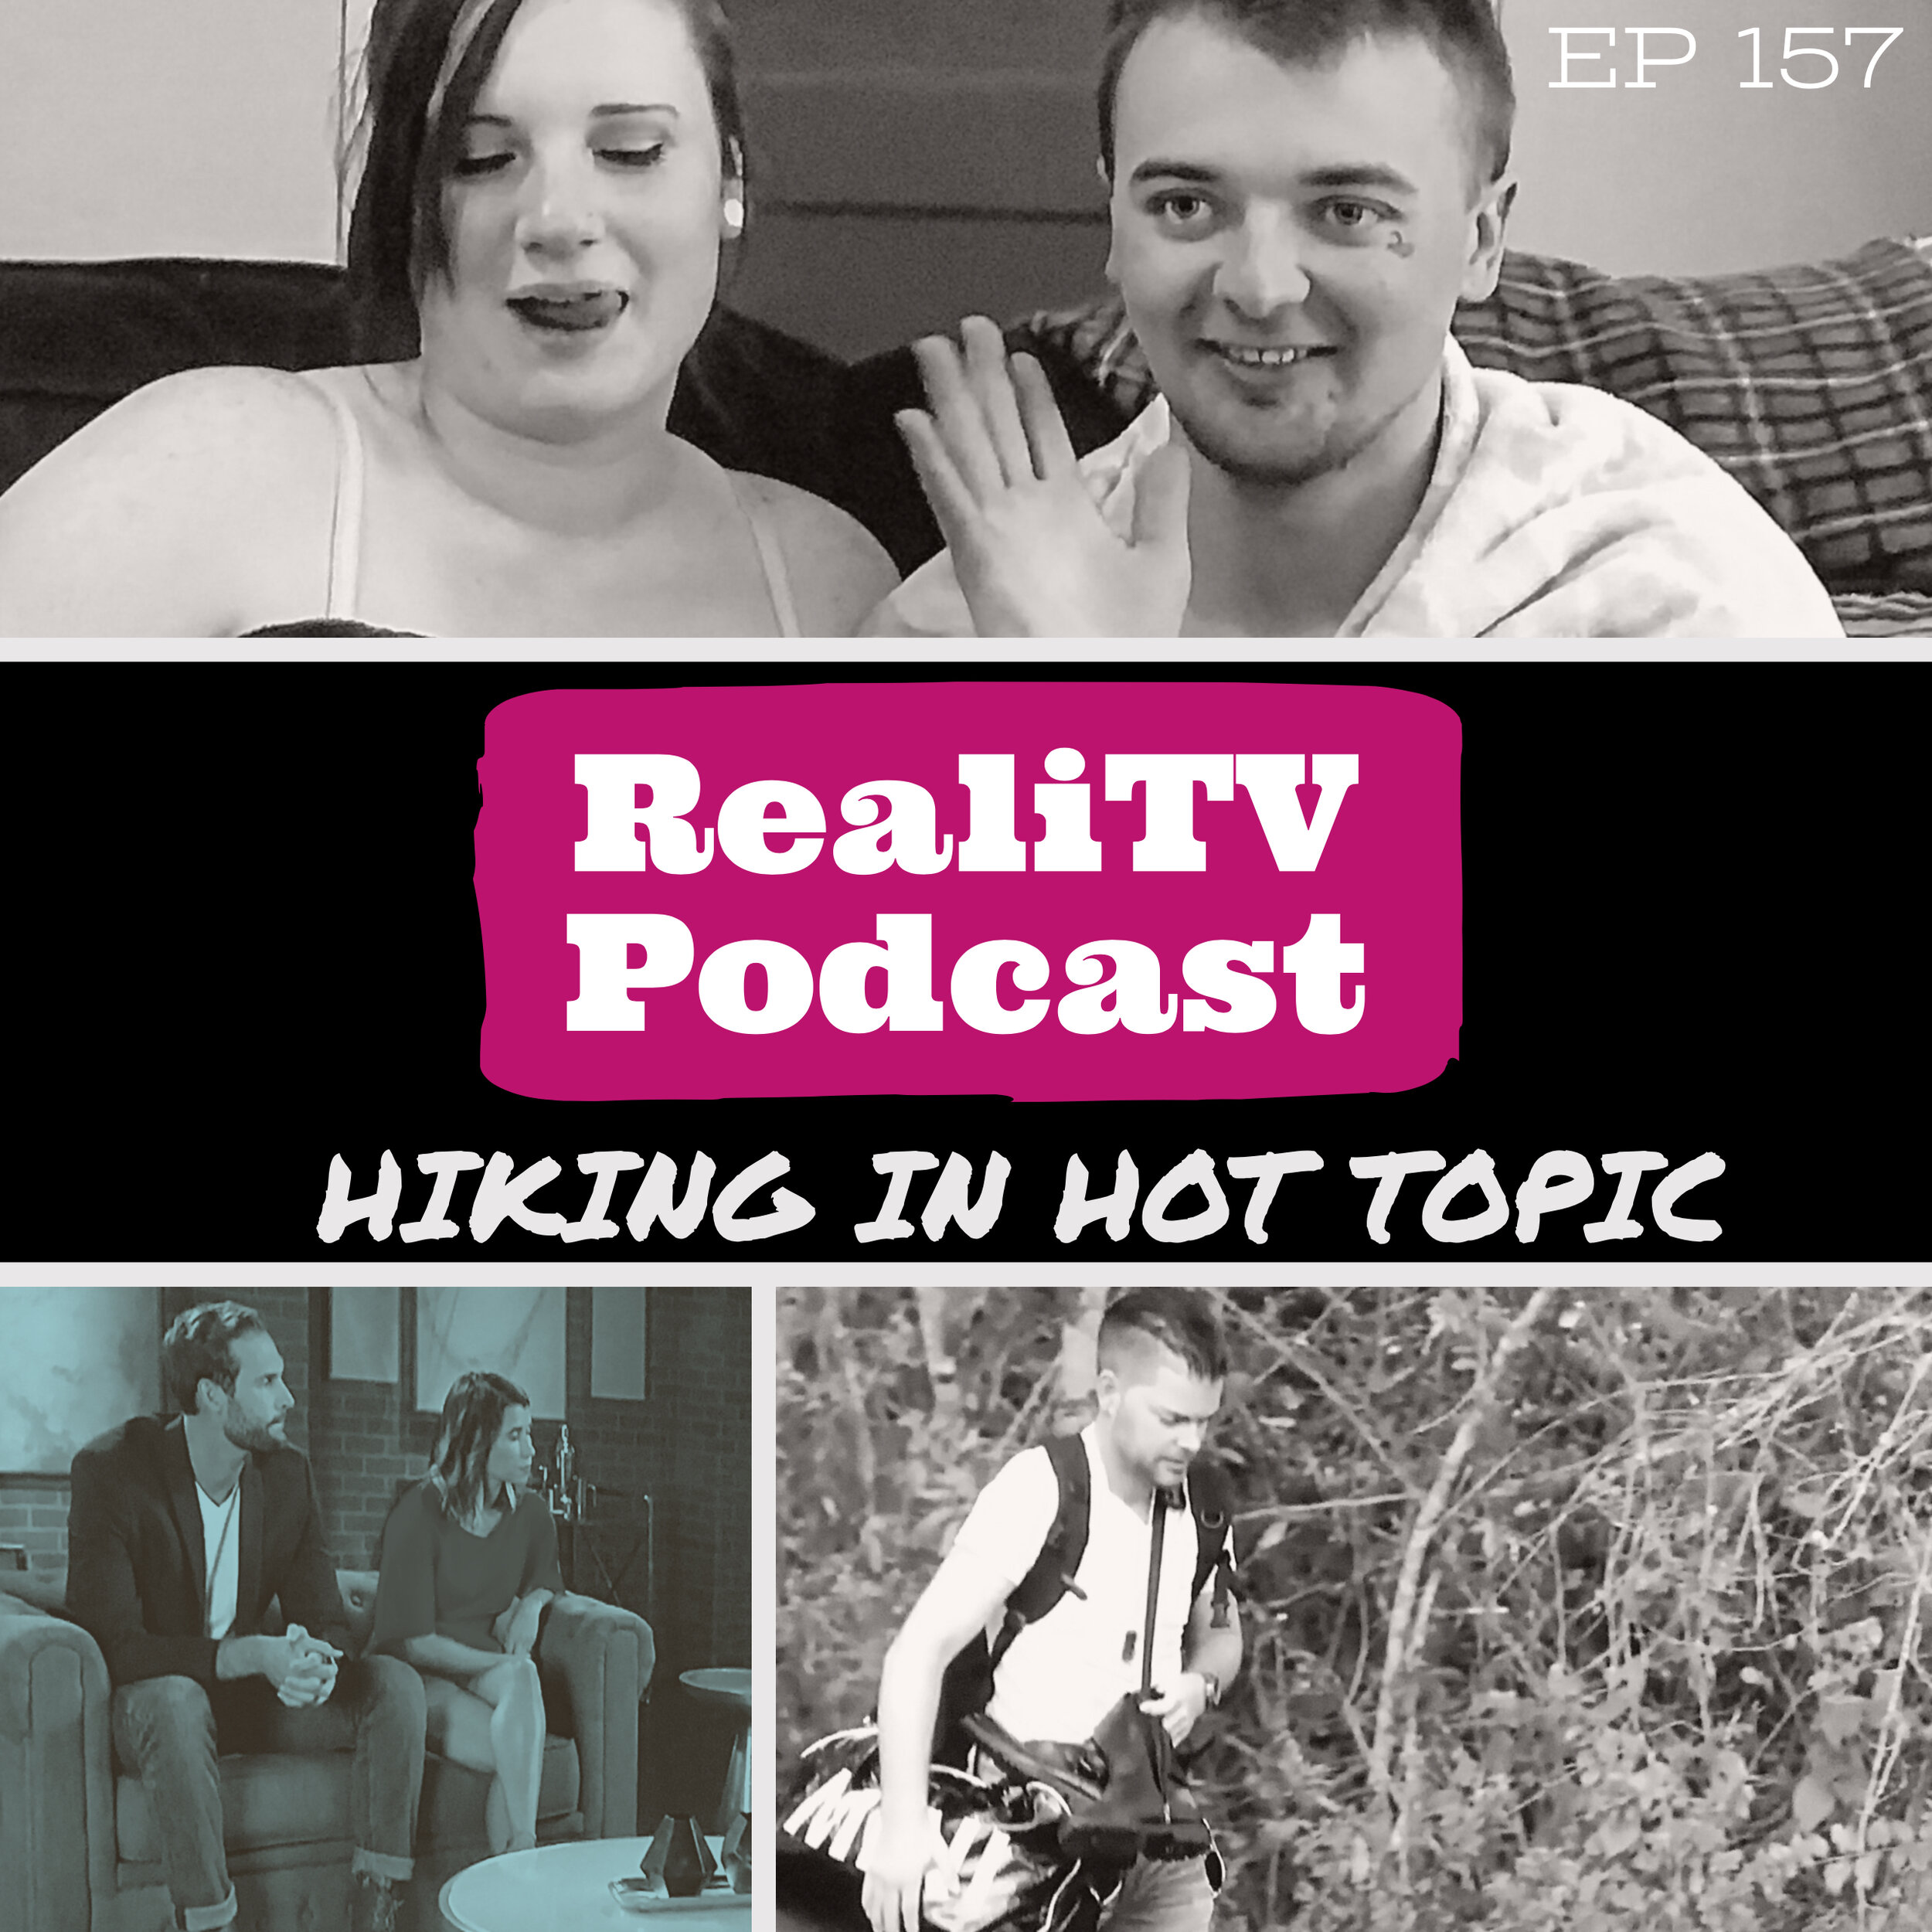 """Episode 157: Hiking in Hot Topic 09.26.19 - I've been binging documentaries lately and you should too! I've got a few """"must sees"""", as well as a new couple we should be paying more attention to. Speaking of couples…Married at First Sight wrapped up its season by putting Matt's full douchebaggery on display. Psst, nice booties, Bro.Over on Love After Lockup, we were treated to a new couple AND a hot new single that's blowing up the Sharts, oops, I meant charts. Of course a weekend isn't complete without 90 Day Fiance Before the 90 Days. It fills my soul just like Angela's womb desires to be filled… SUBSCRIBE, SHARE & LEAVE A 5-STAR REVIEW!*Total Request Podcast at www.patreon.com/amandaandjodie YOU request the shows, WE watch them & break em down!"""